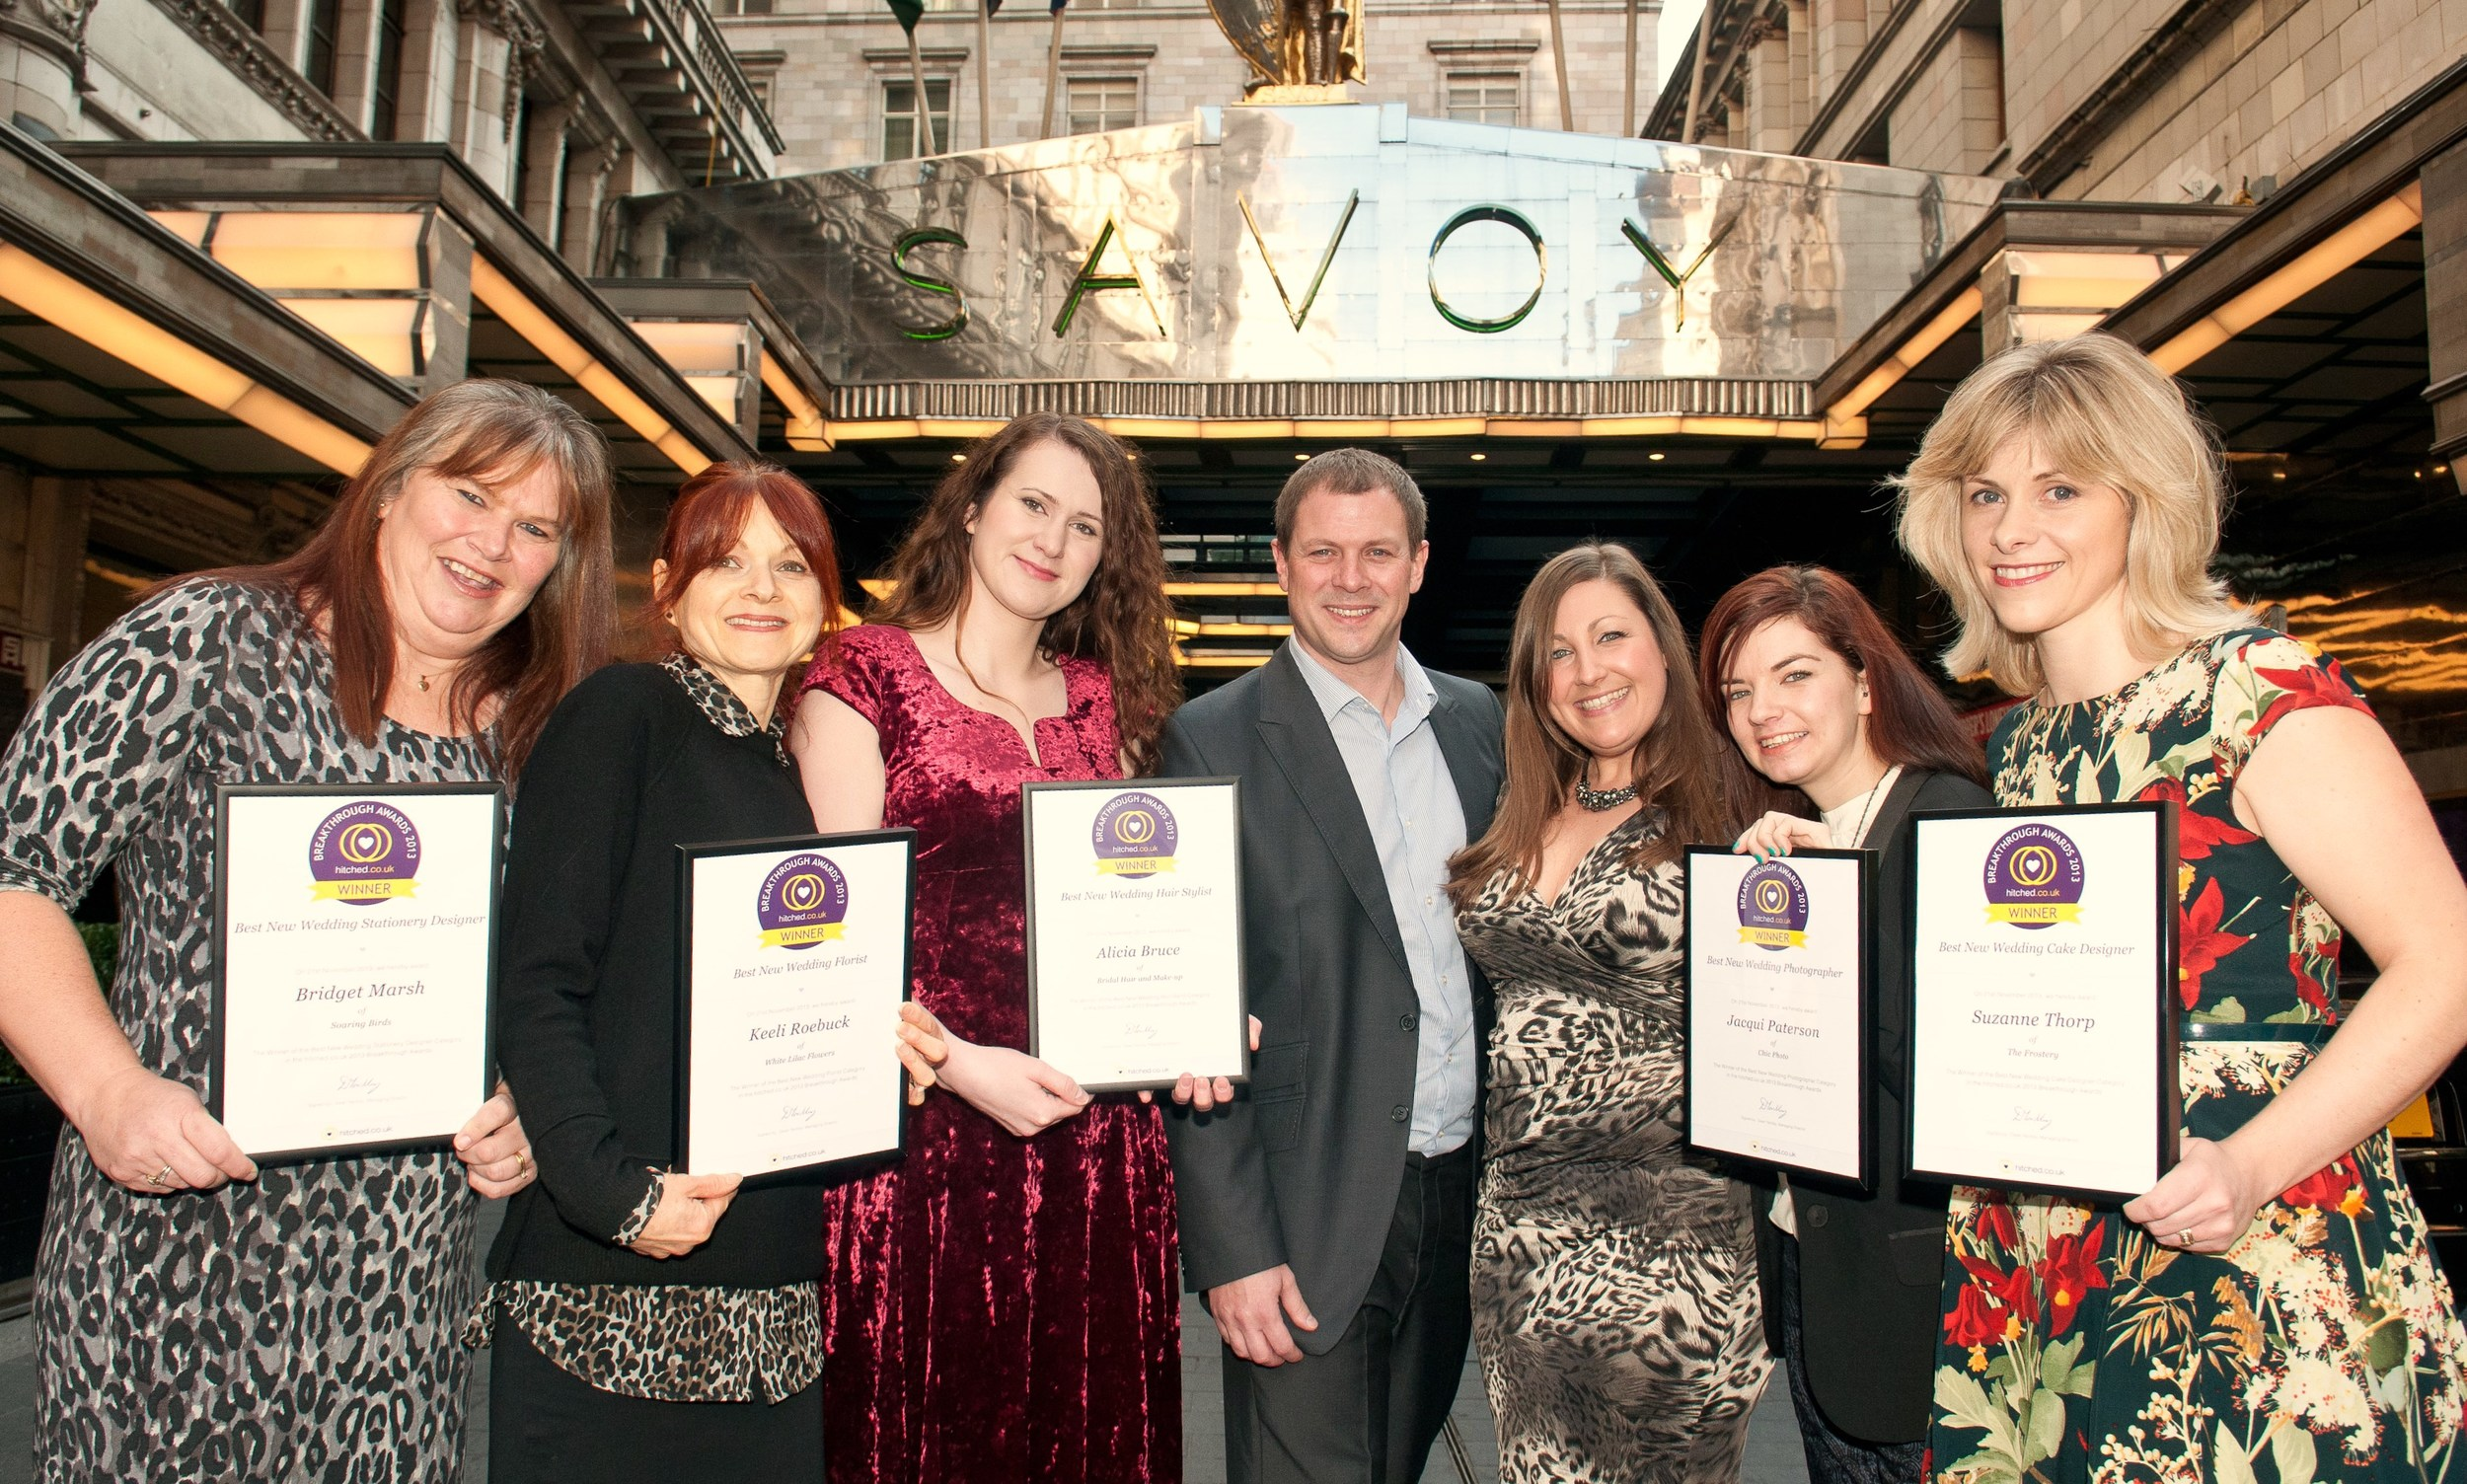 The Hitched Breakthrough Wedding Award winners together in front of The Savoy Hotel